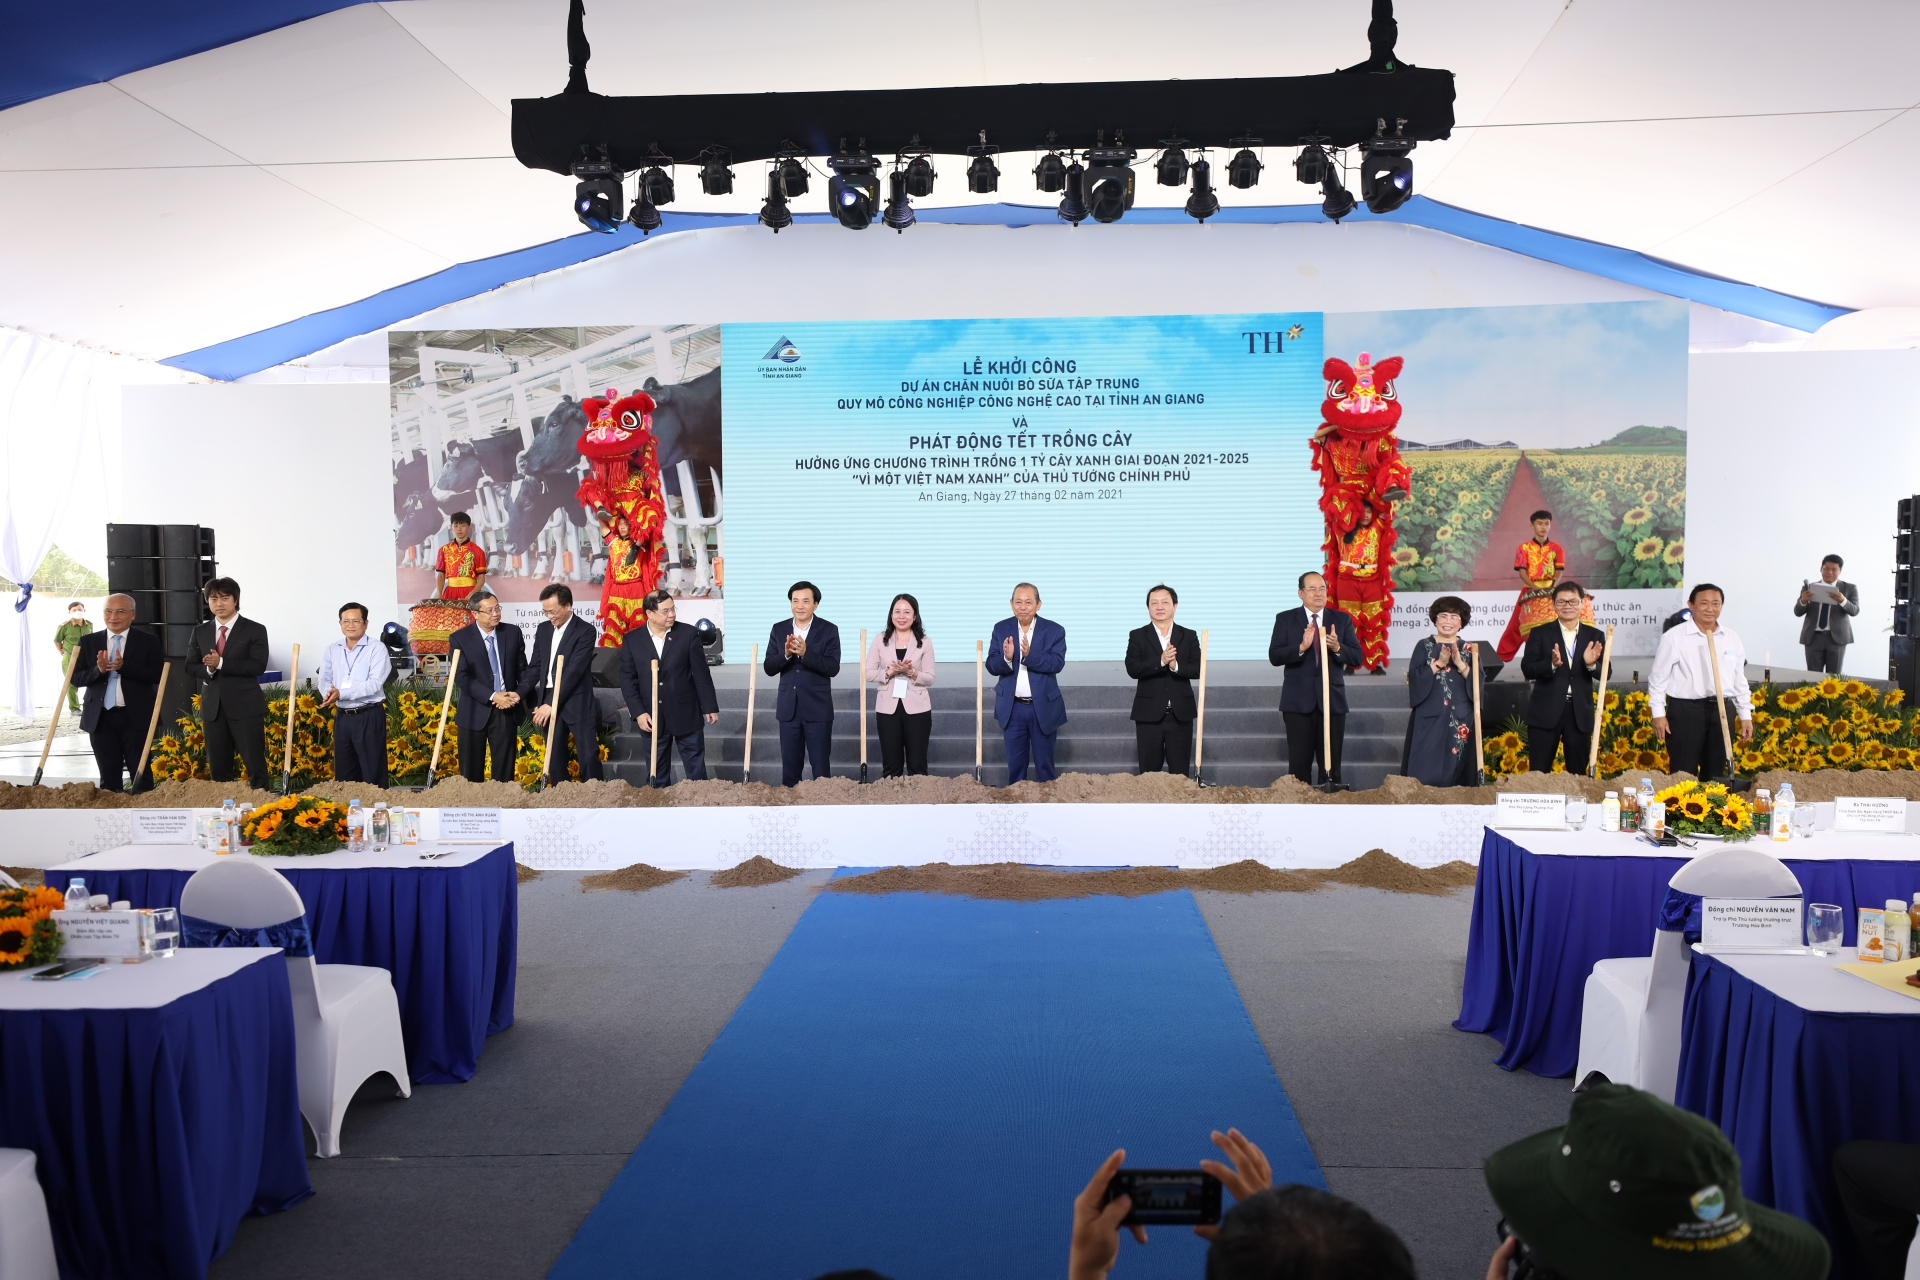 TH Group develops new milk project in An Giang